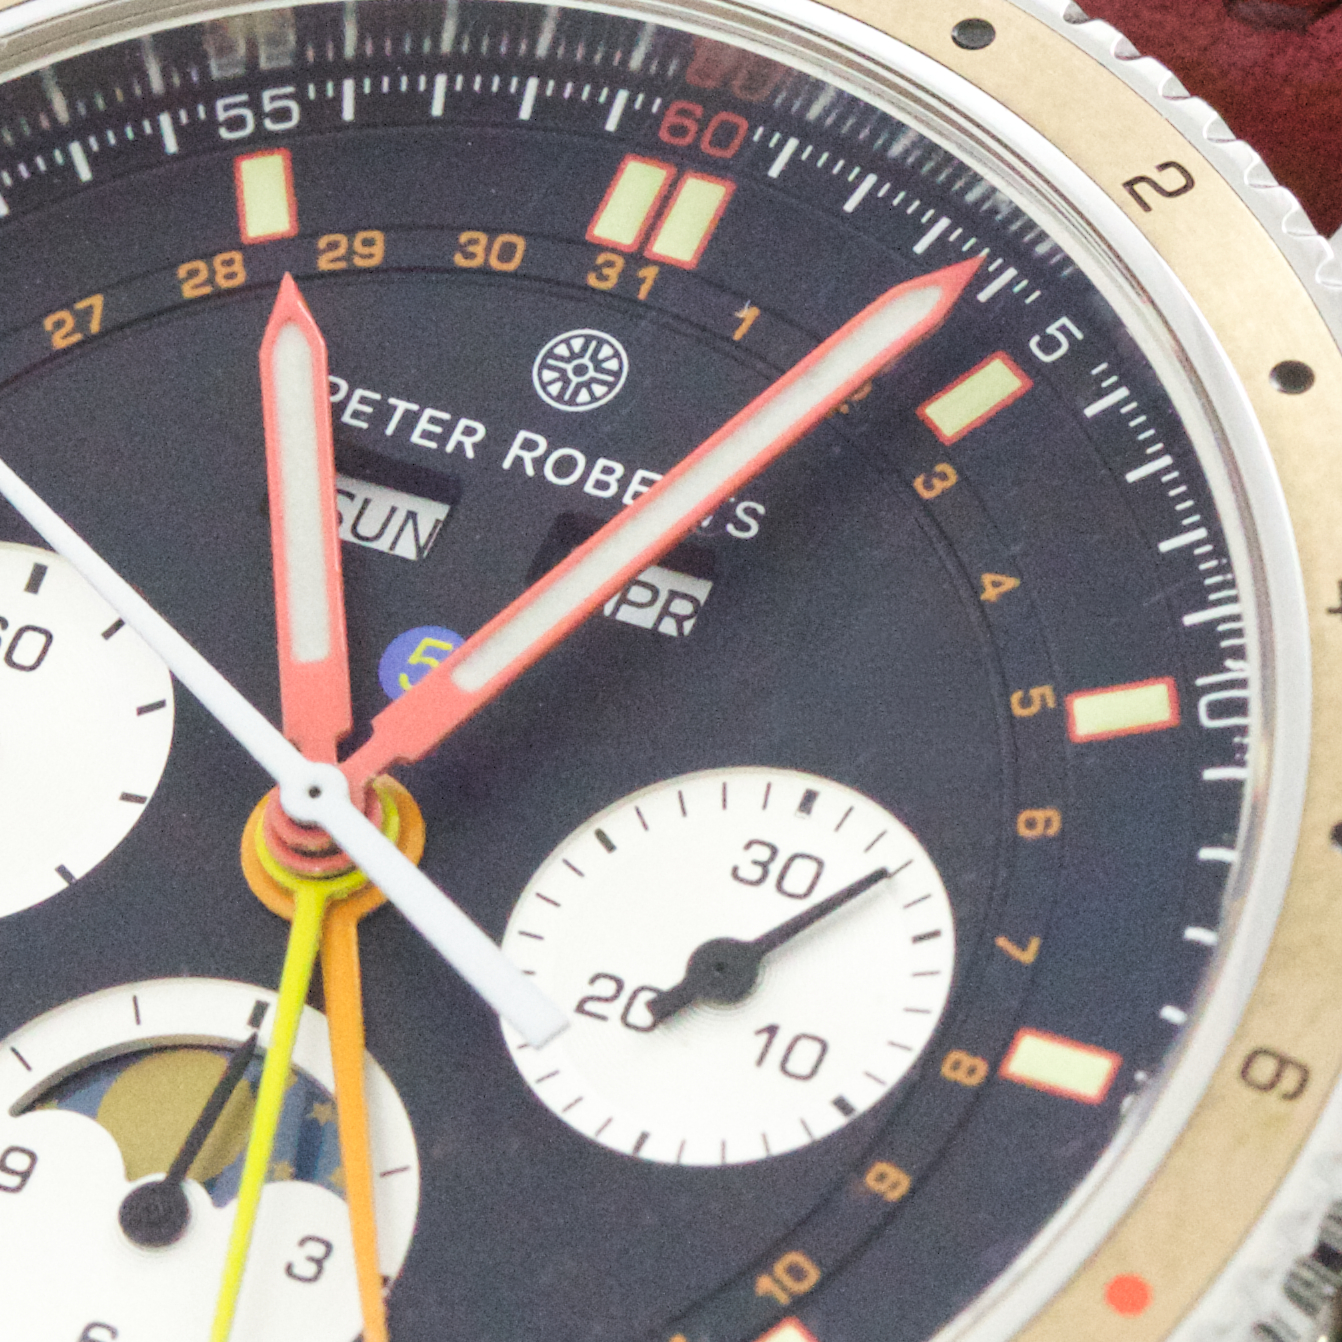 Peter Roberts Grand Complication 5 - The Dial